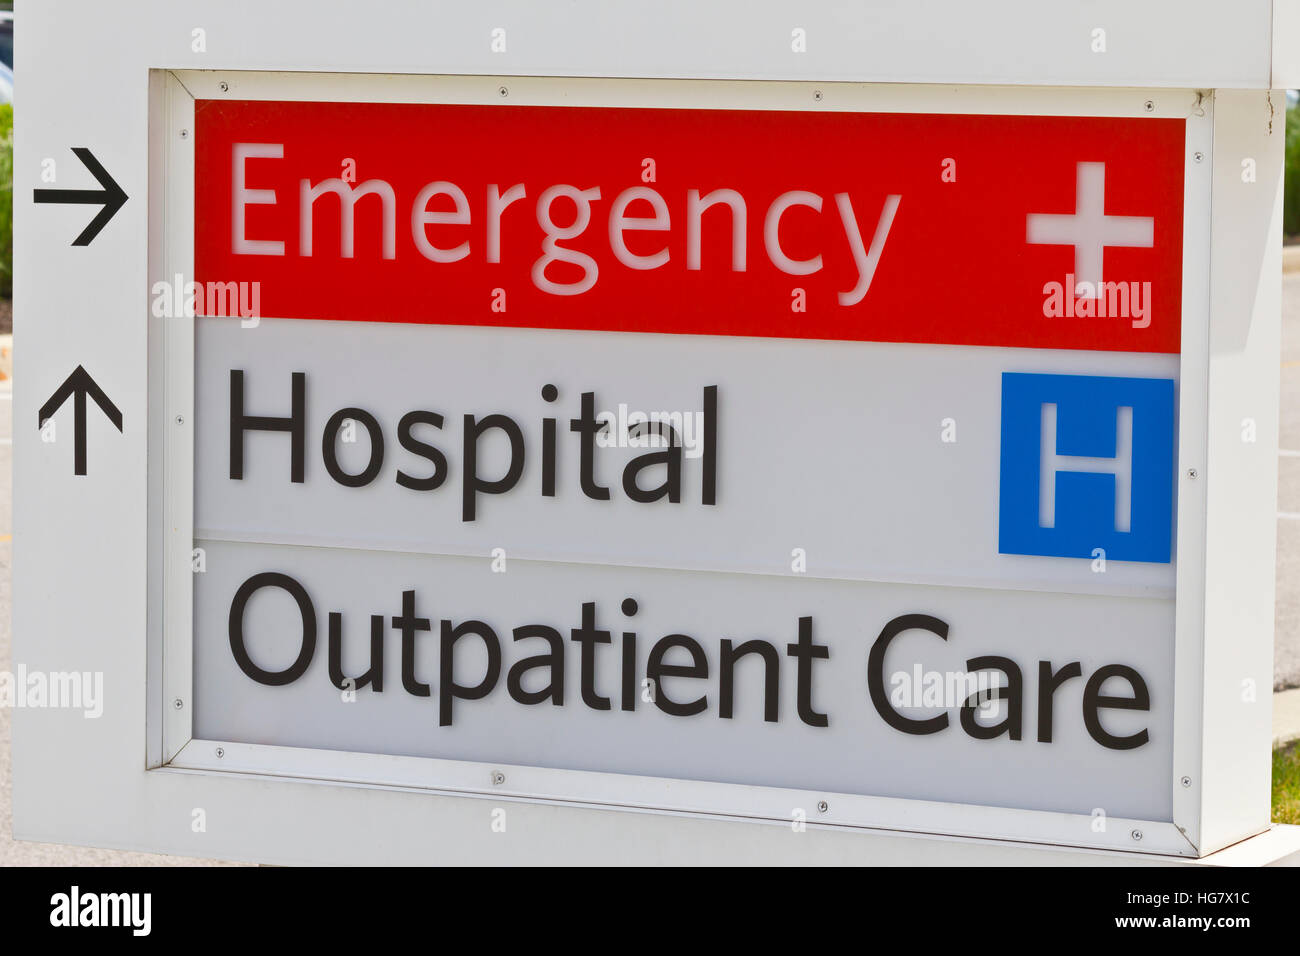 Emergency Entrance sign for a Local Hospital IV - Stock Image